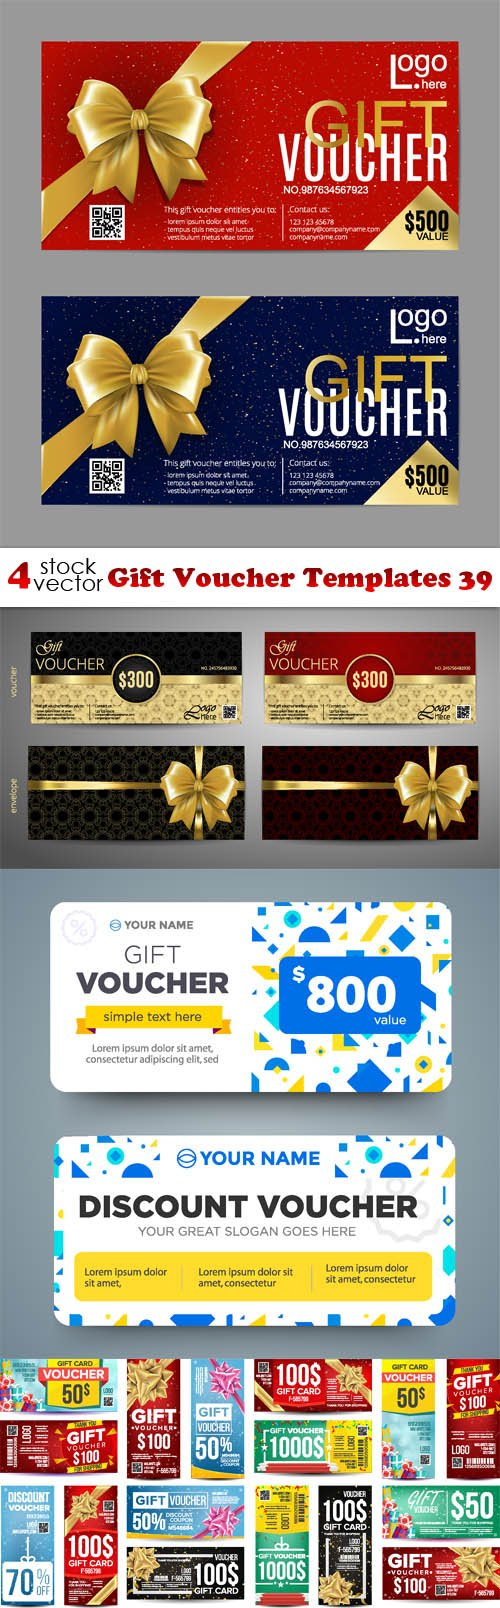 Vectors - Gift Voucher Templates 39